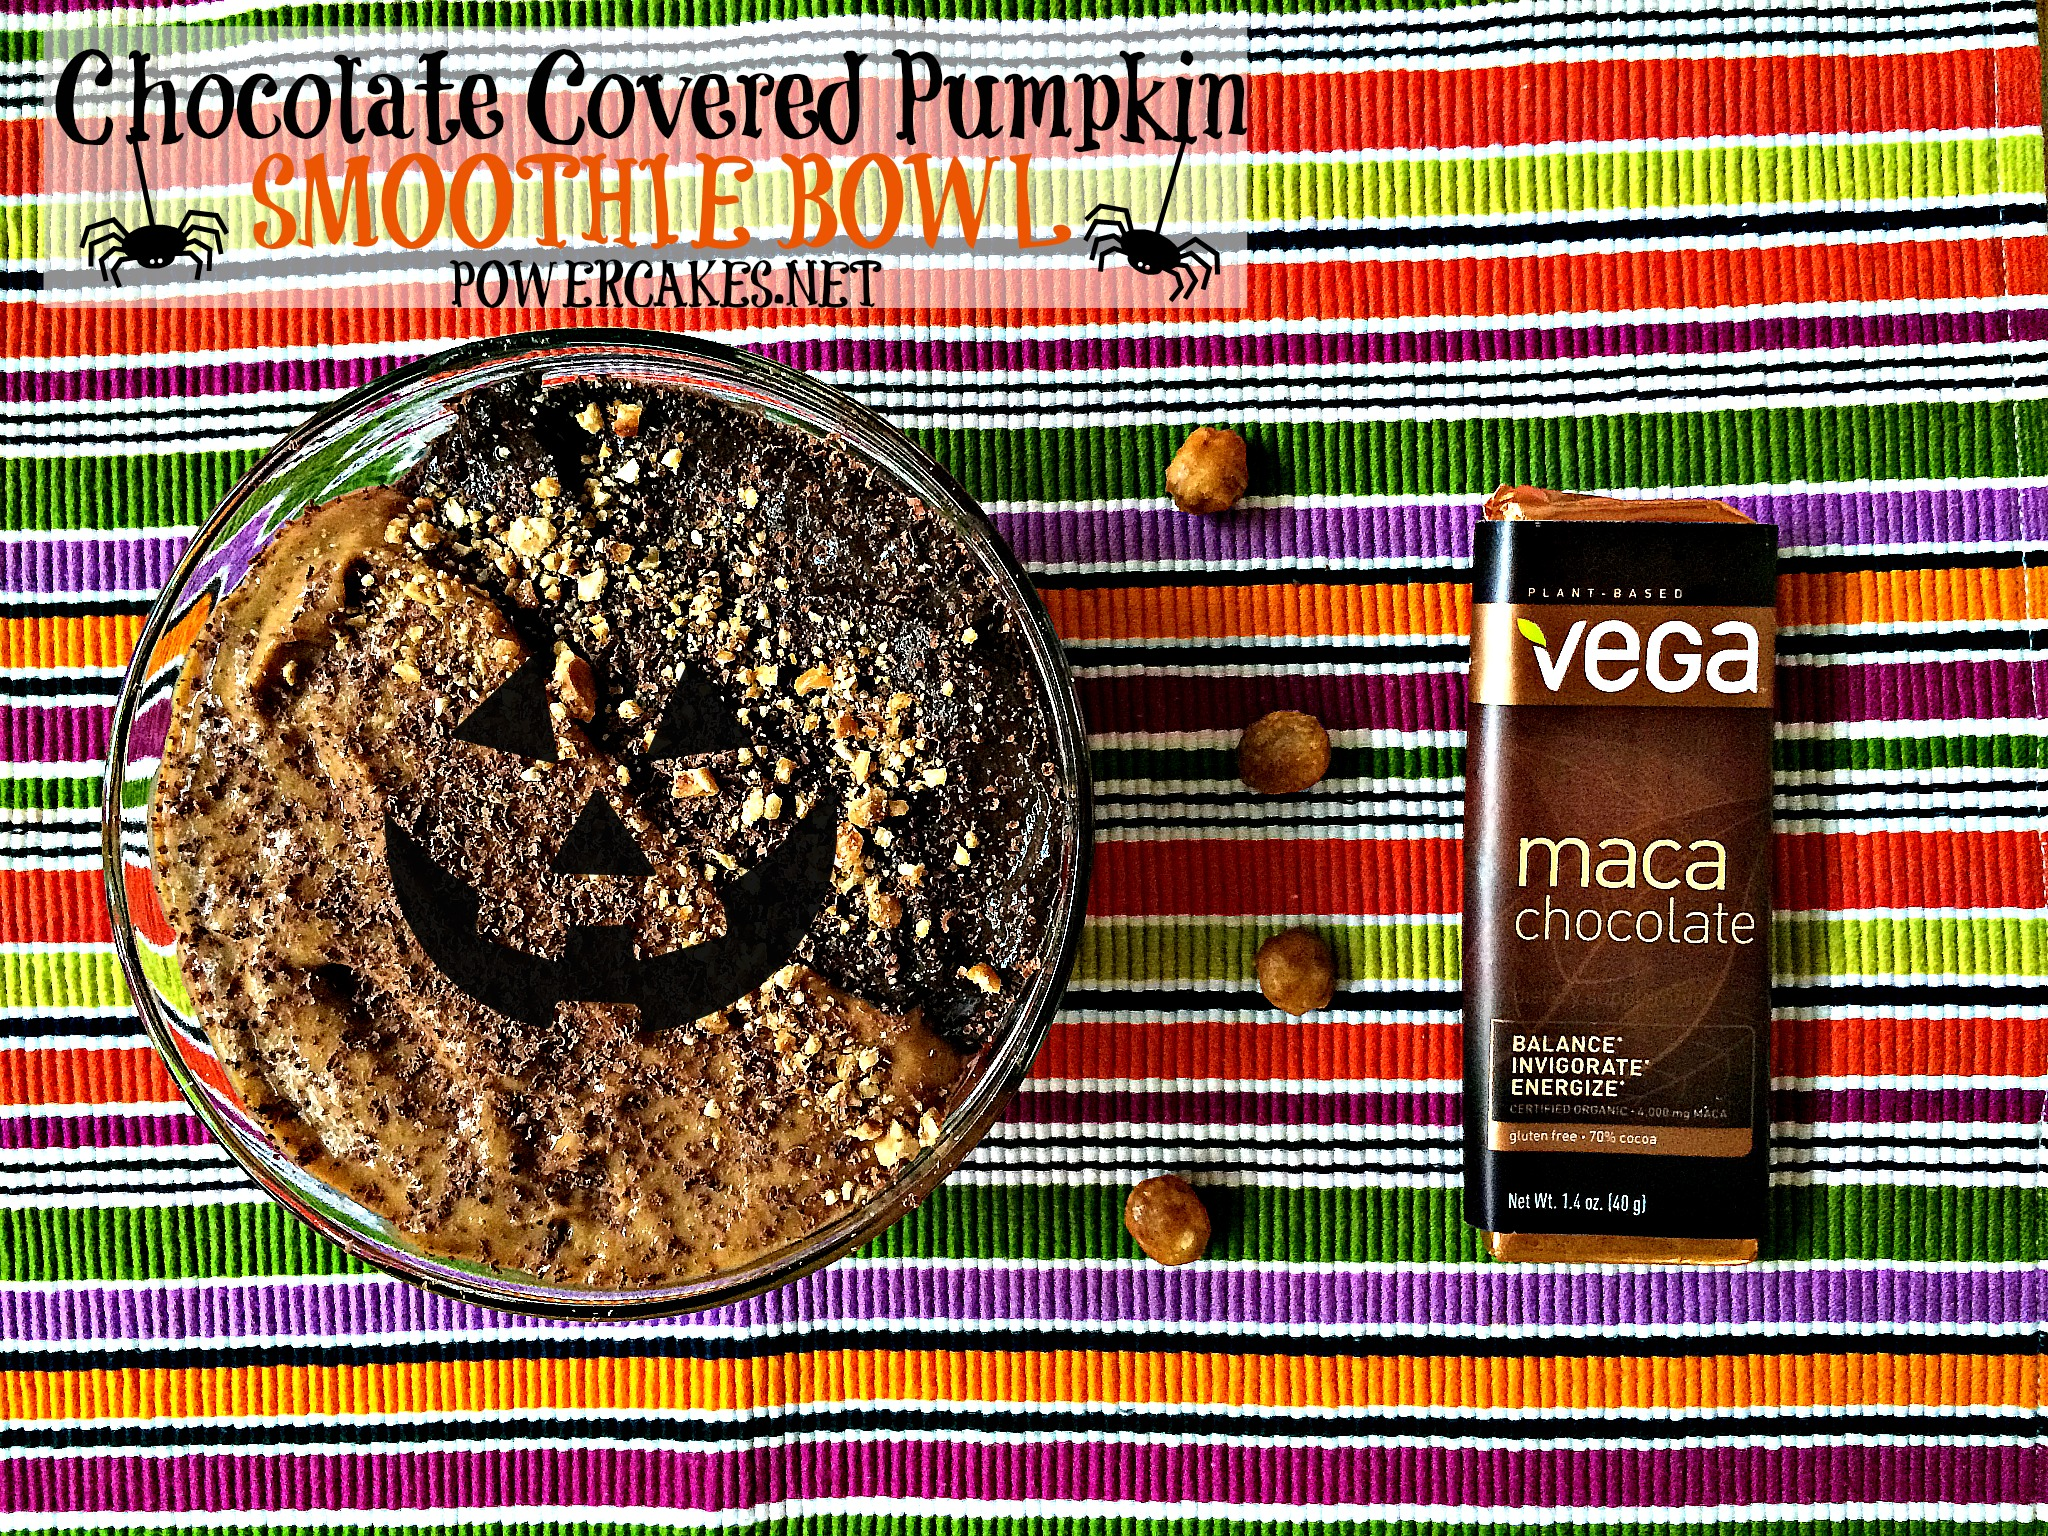 VEGA Halloween Smoothie Bowl Powercakes